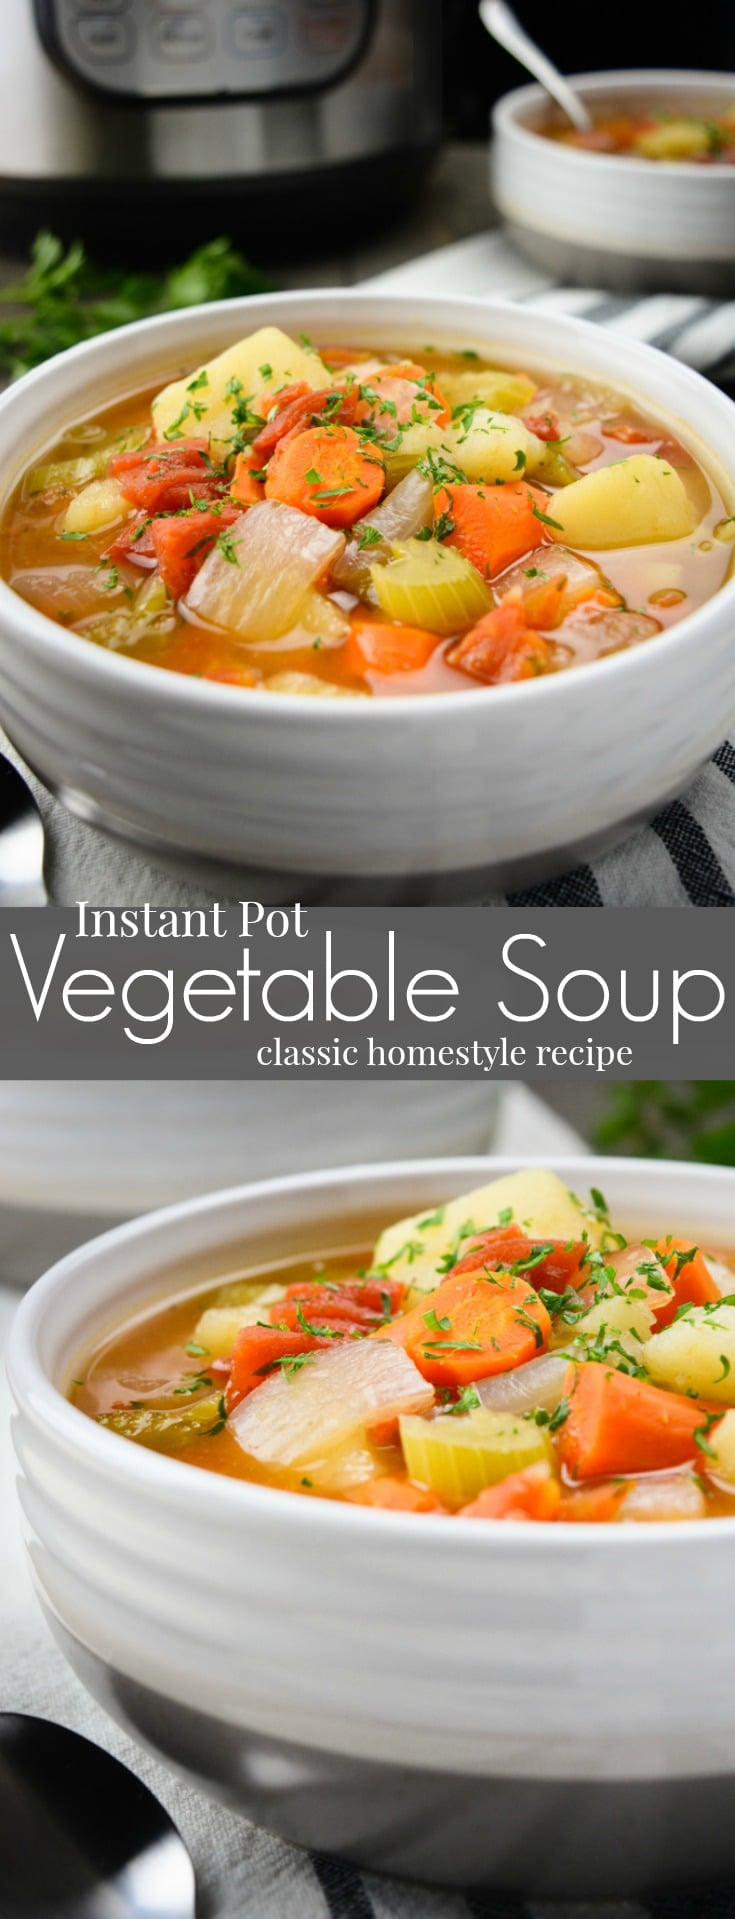 Instant Pot Vegetable Soup loaded with carrots, potatoes, onion, tomatoes and celery.